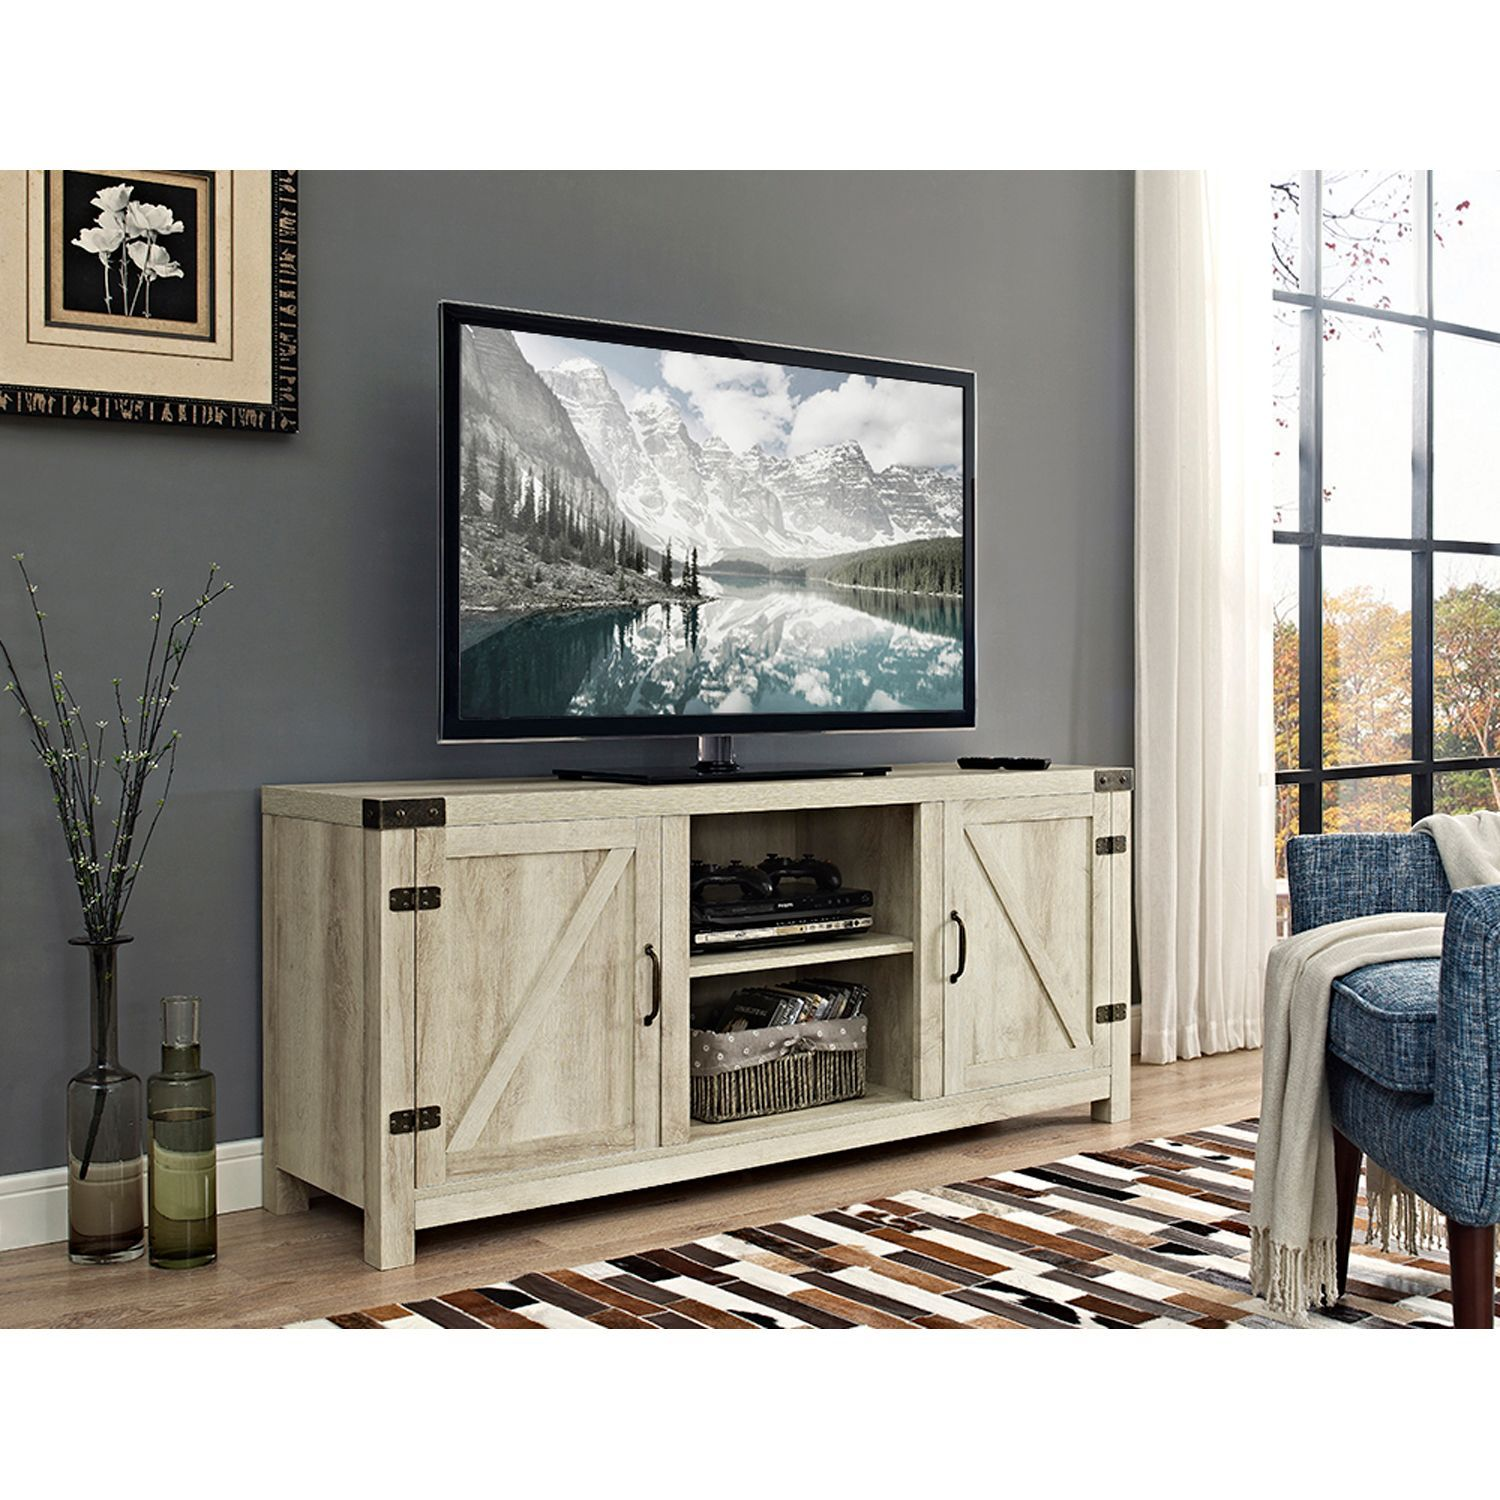 Null Barn Door Tv Stand Rustic Tv Stand Living Room Tv Stand